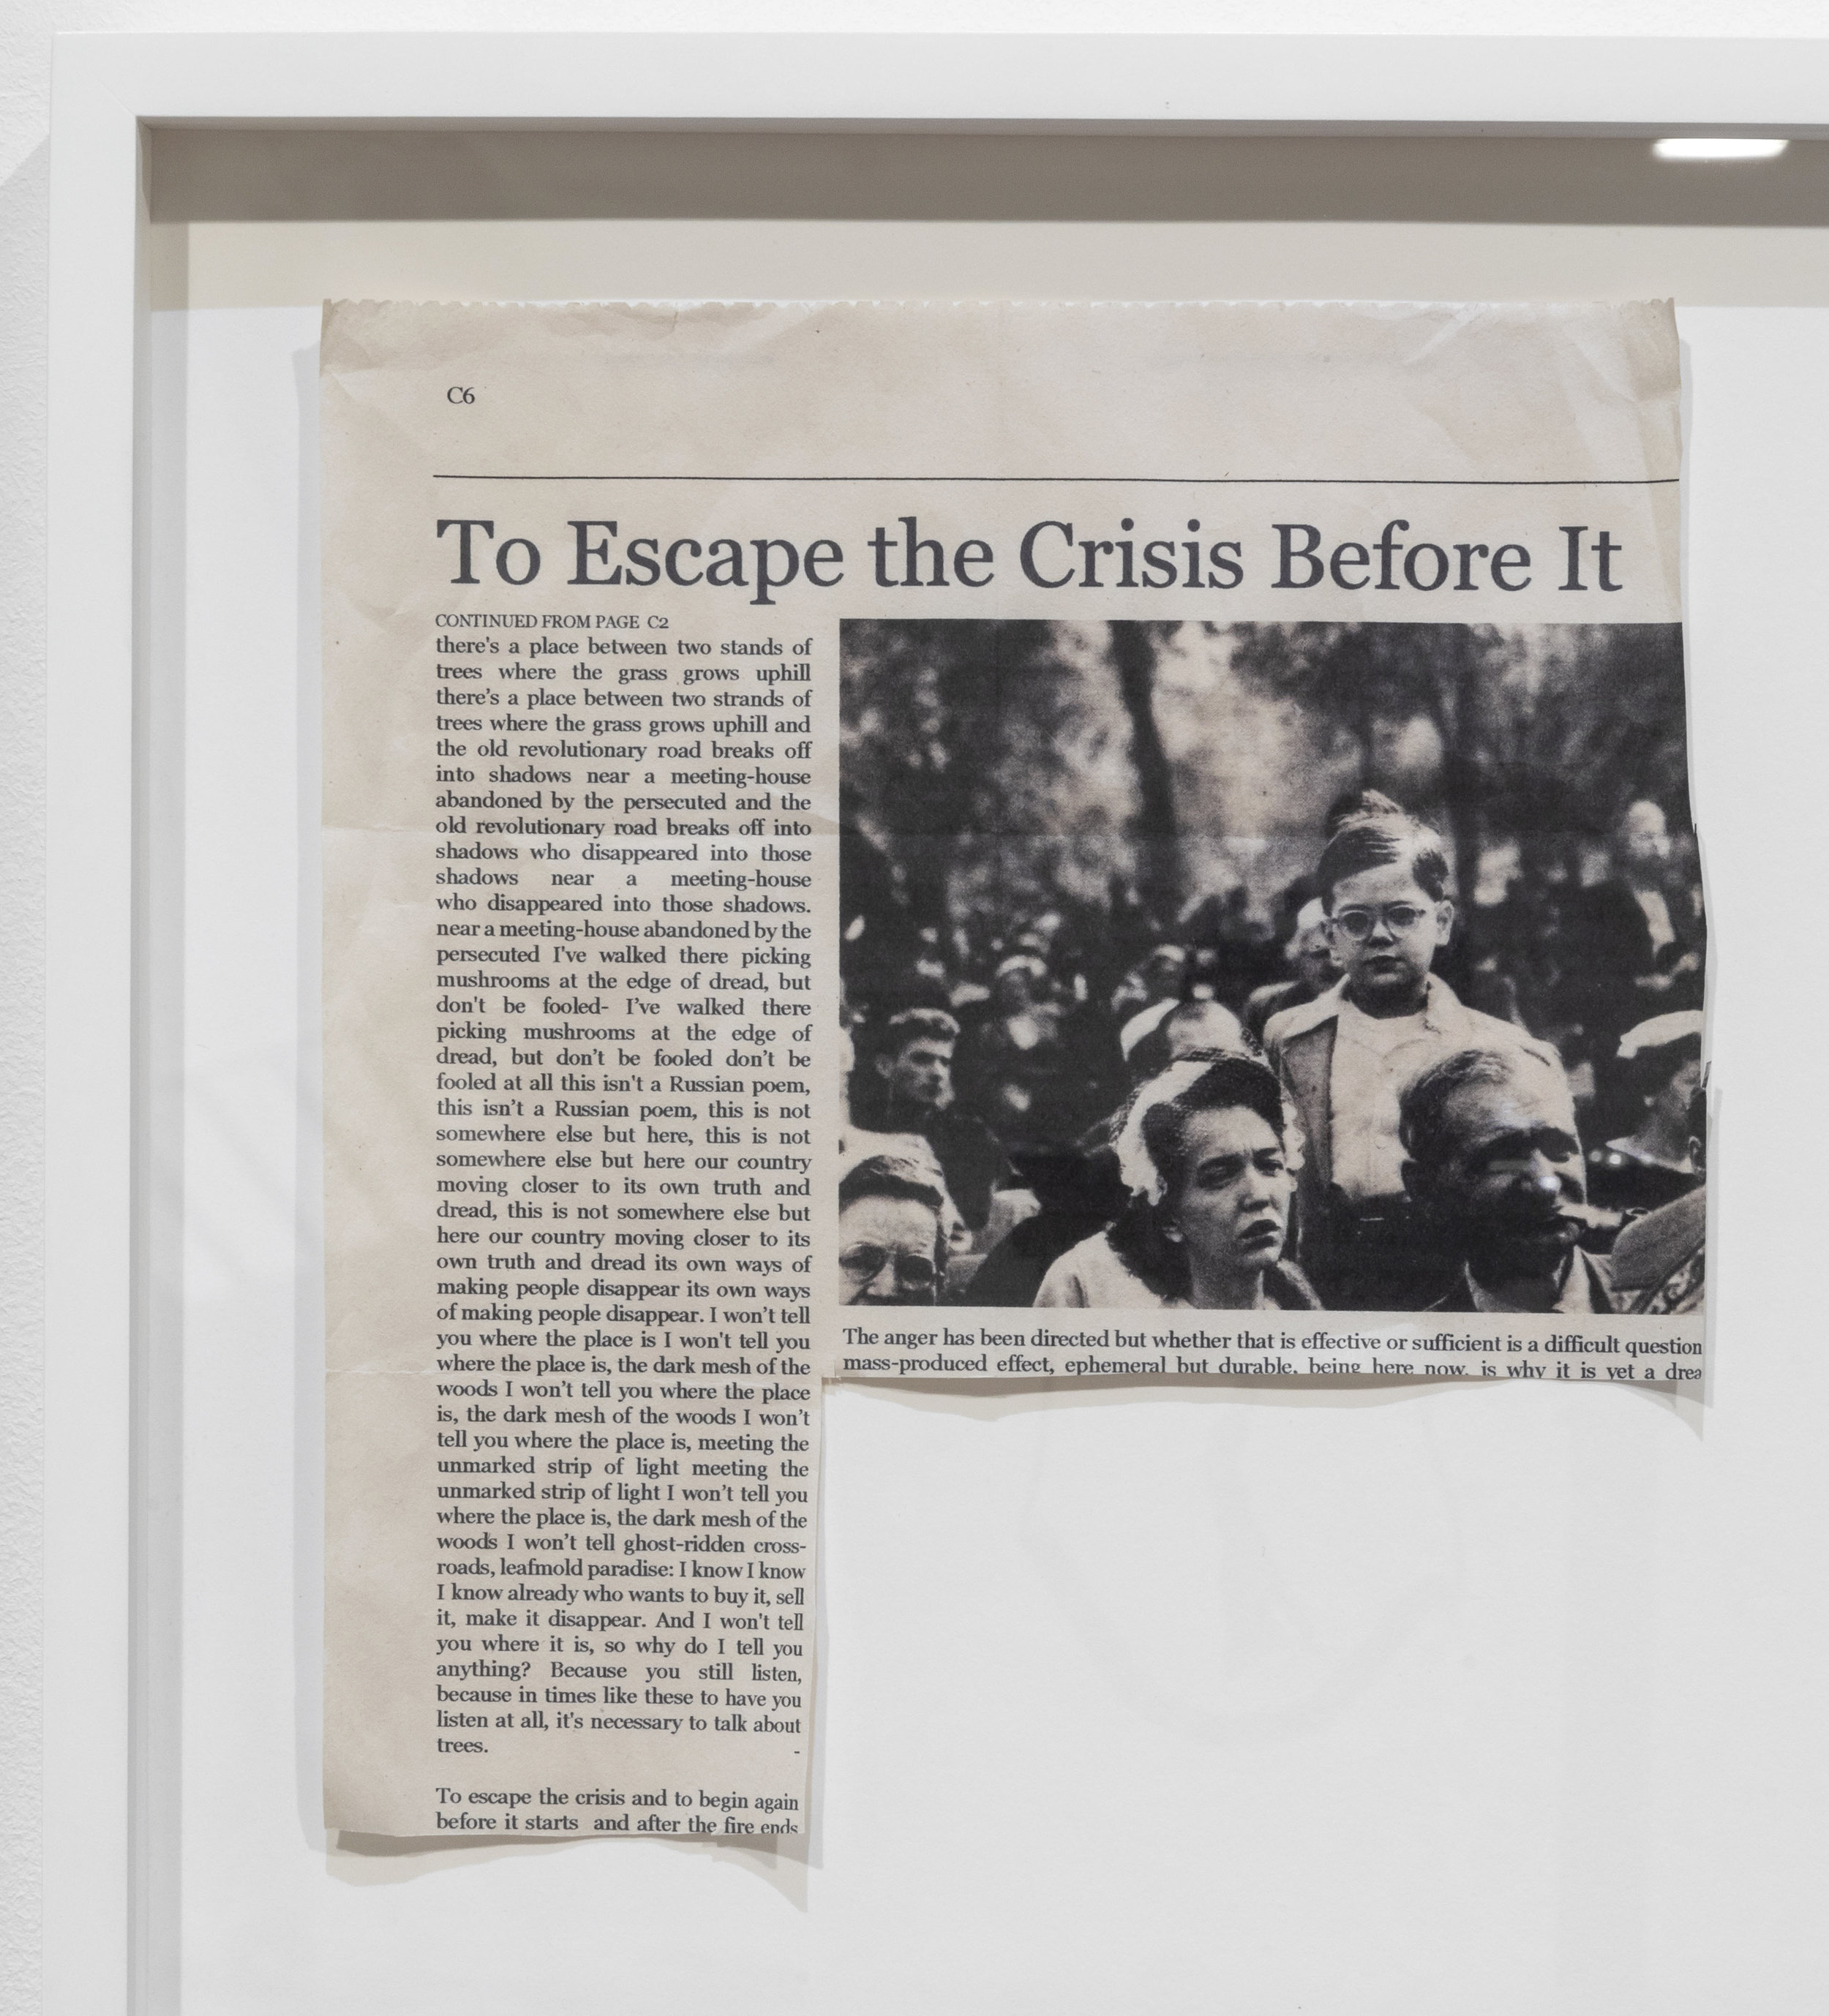 To Escape the Crisis Before It (After Adrienne Rich and Diane Arbus), 2019 (detail)  A poem by Adrienne Rich and a photograph by Diane Arbus are disguised as reportage in a newspaper clipping that the artist has written, transcribed and constructed. The transcription of Rich's poem in the clipping is based on the artist's observation of how his own eyes moved across the words of the original poem on a page, often re-reading certain lines over and over in rhythmic repetition. The poem, which is about how poetic language may be the only way to bring a public into engagement with important political conditions, reads differently in the new format. Like the poem itself, this artwork shifts and oscillates in the space between factual reporting and poetic reflection.